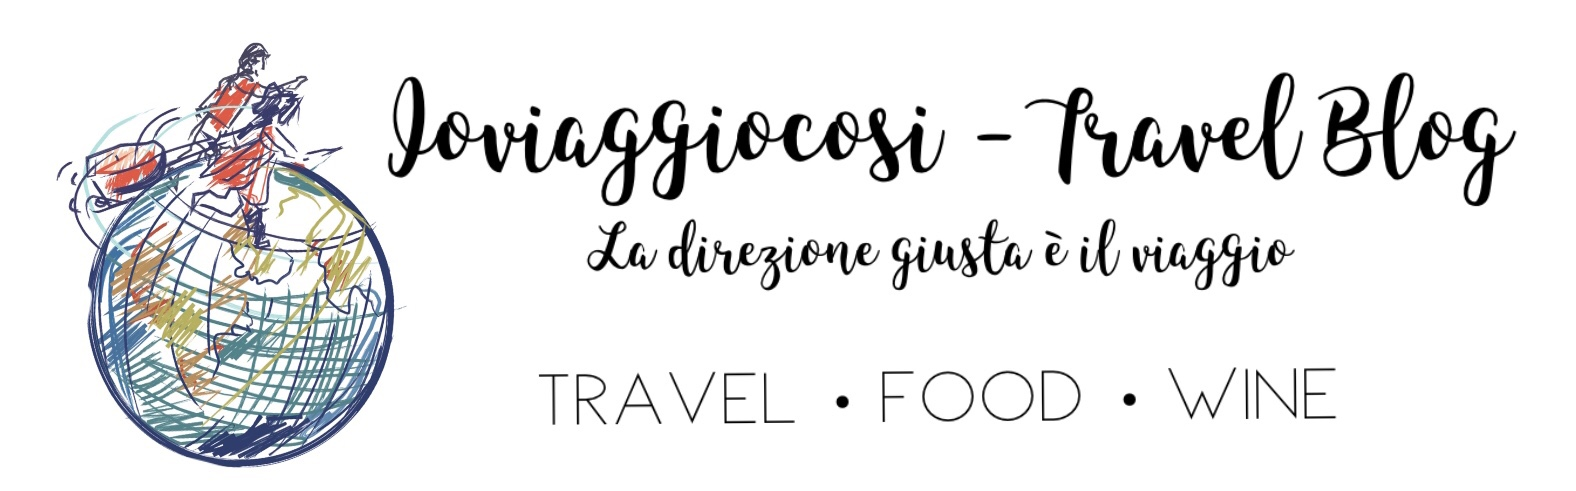 Ioviaggiocosi - Travel Blog